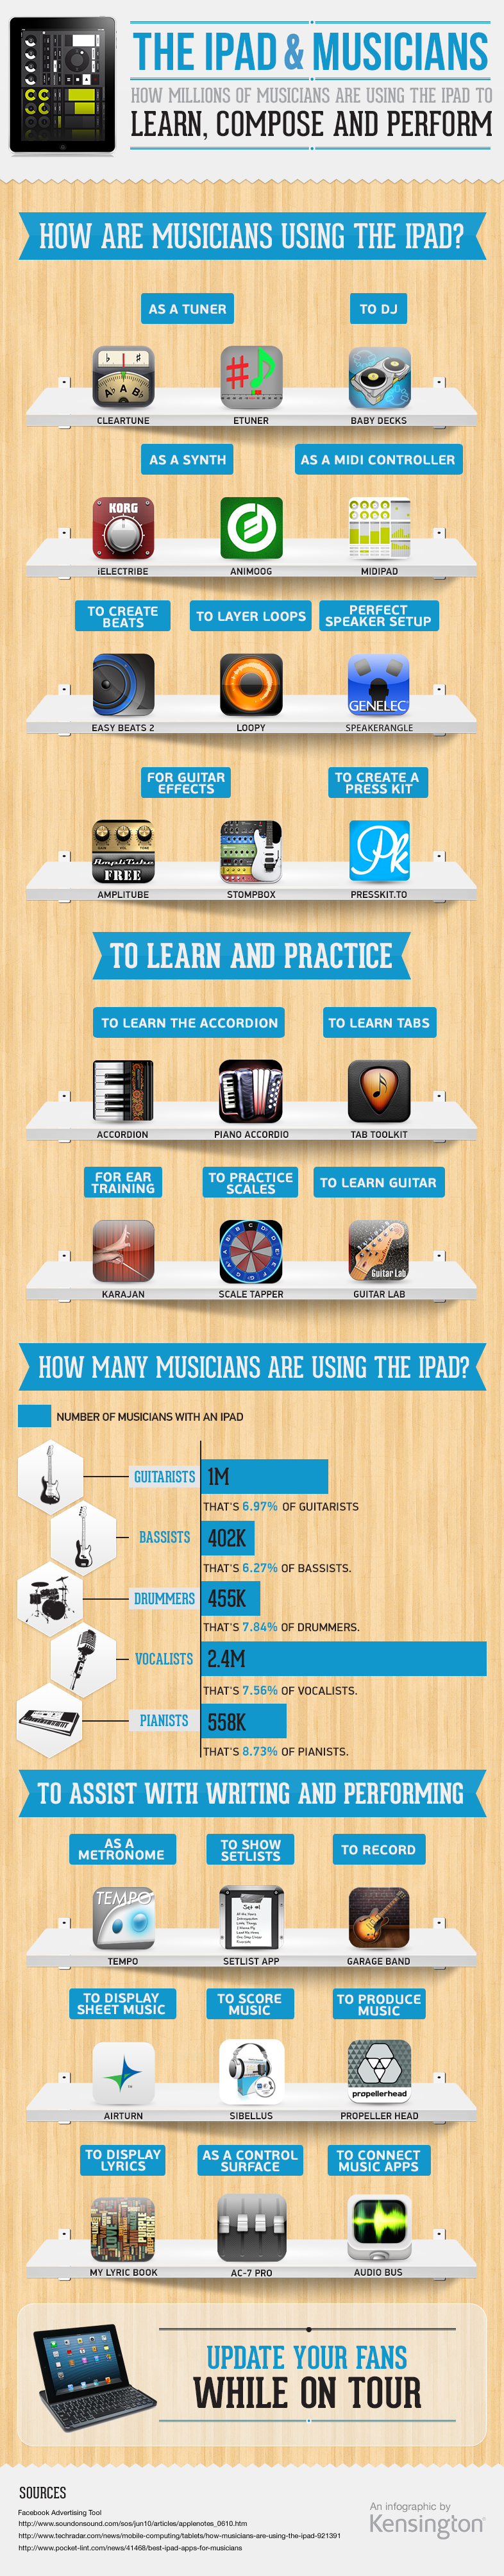 ipad-for-musicians